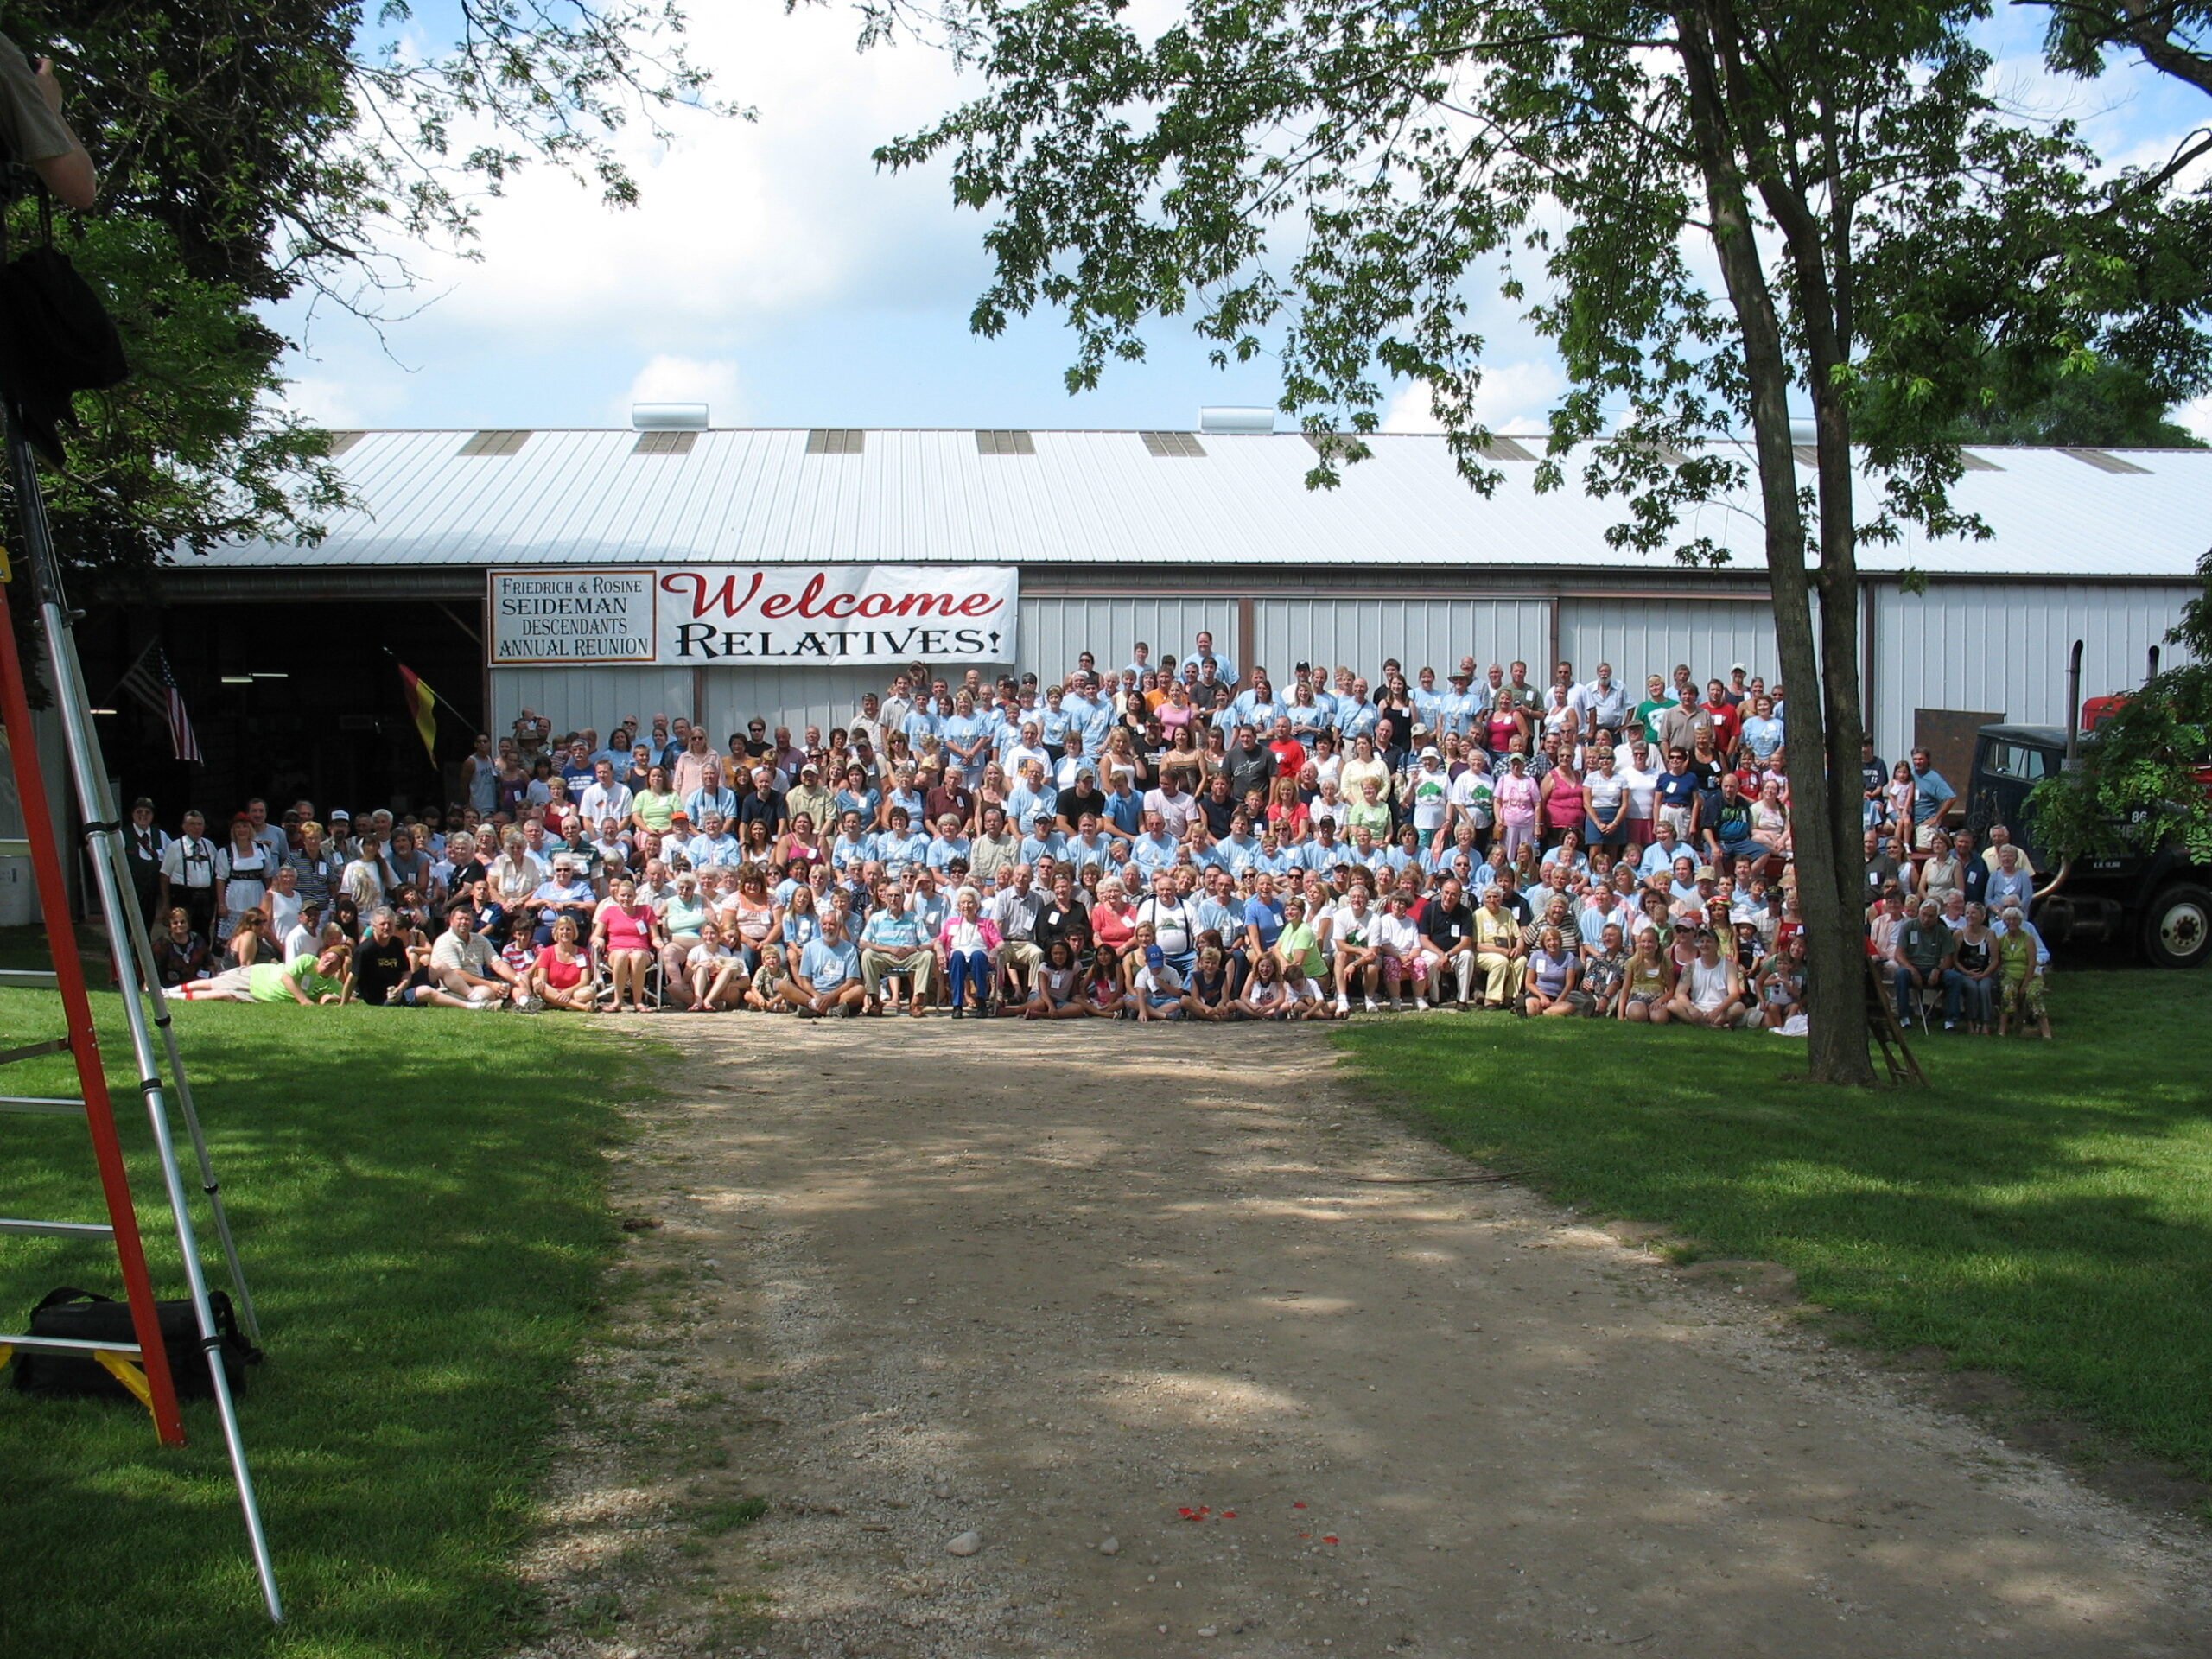 75th annual Seidemann Family Reunion at the family farm in Newburg, Wisconsin, was awarded a Sesquicentennial Ownership Certificate from the State of Wisconsin in 2008.